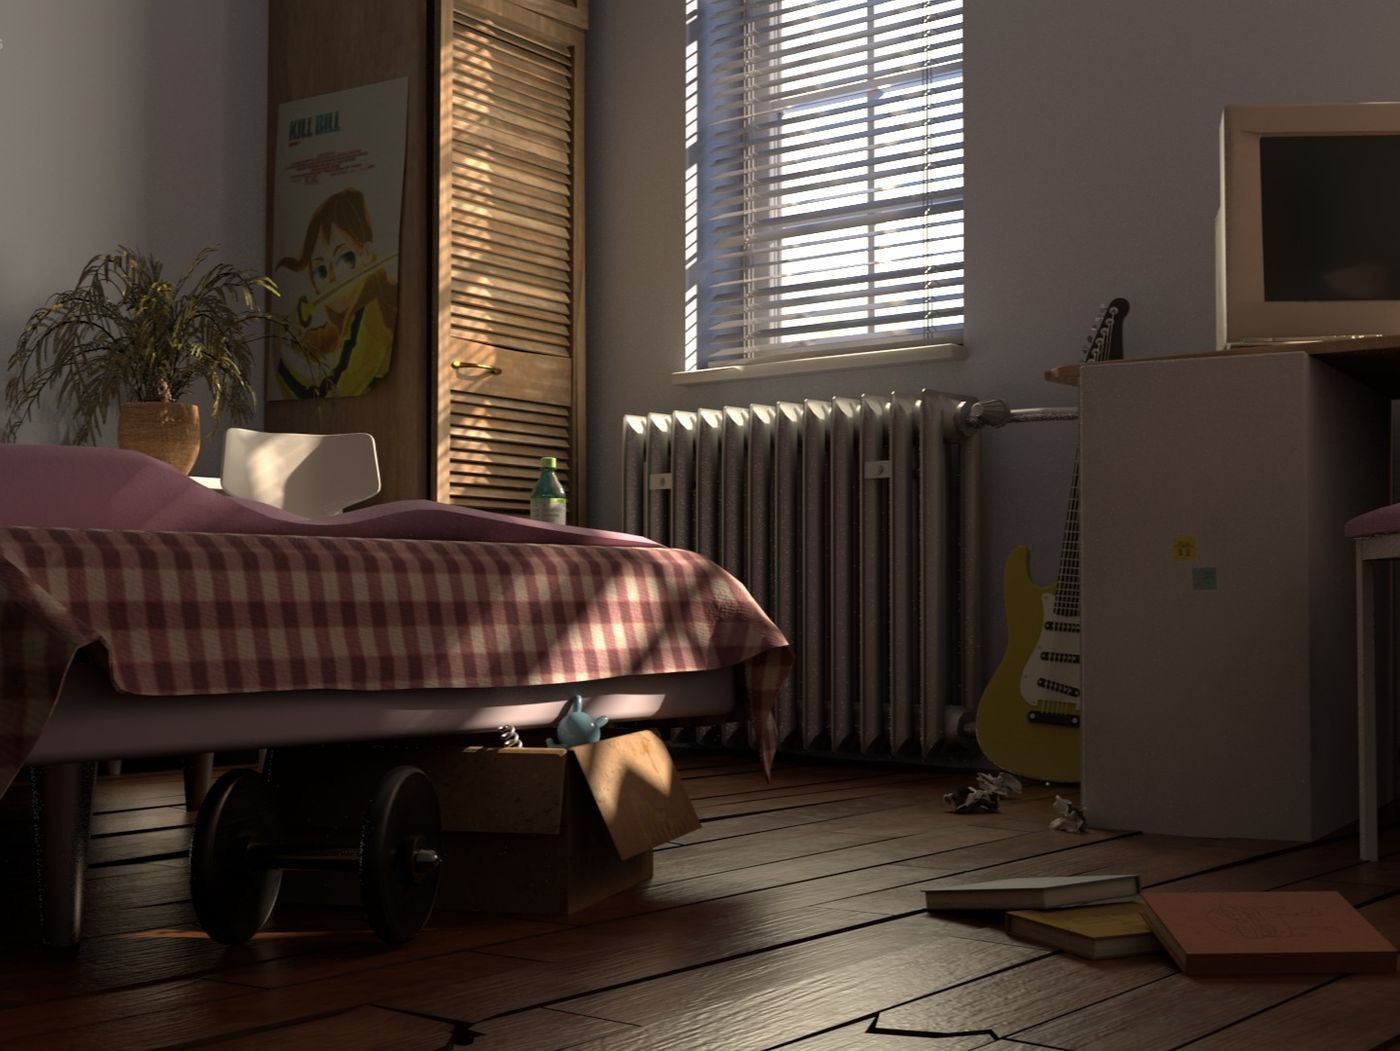 Texturing and Lighting